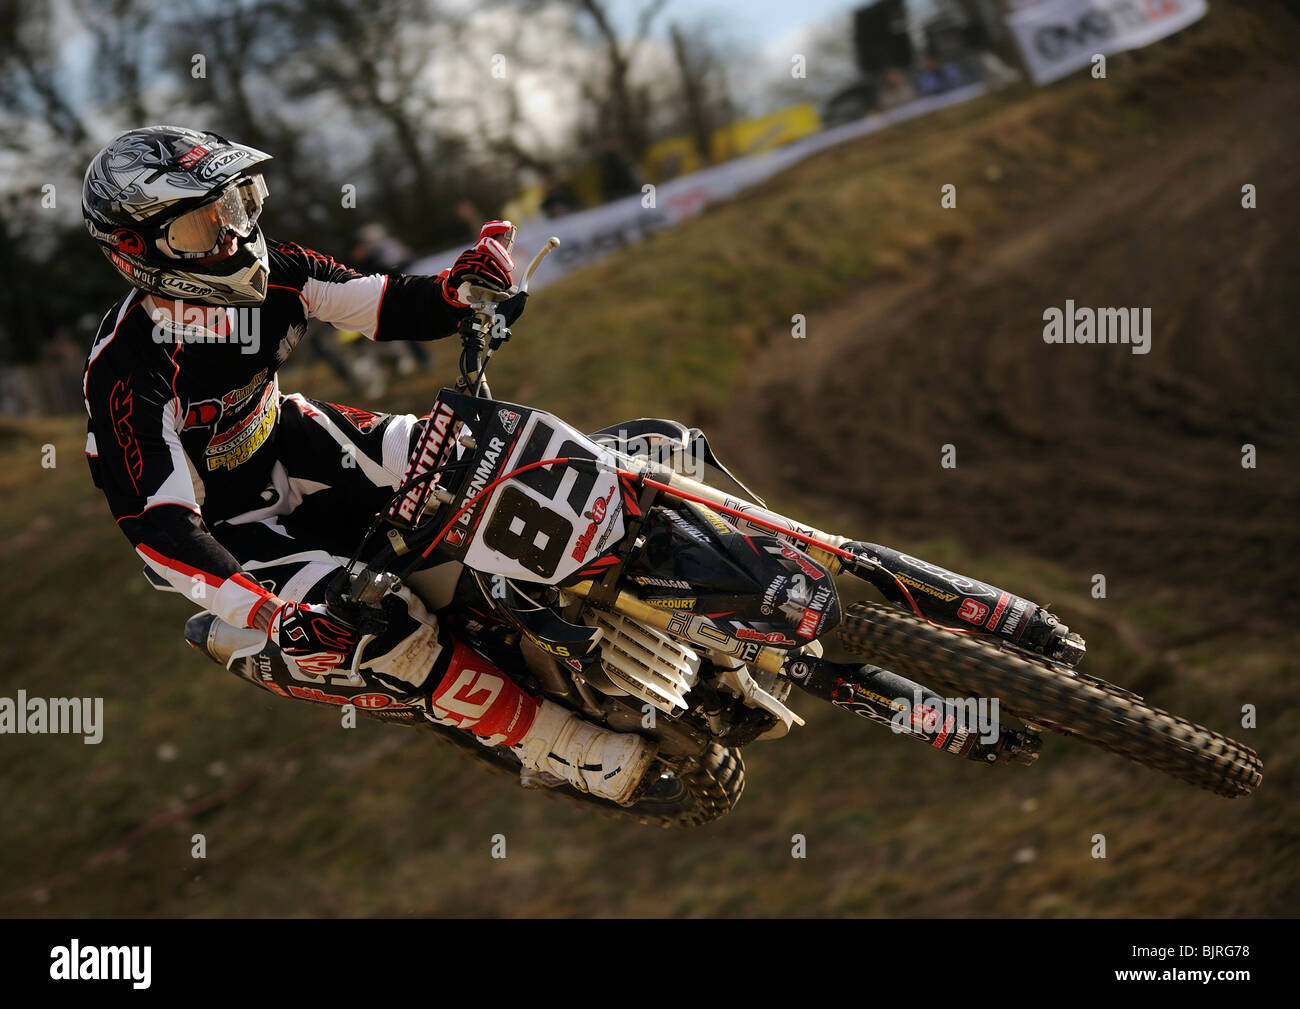 Jason Dougan in action at the 1st round of the 'Red Bull Pro Nationals' event at Foxhill, Swindon on Sunday - Stock Image